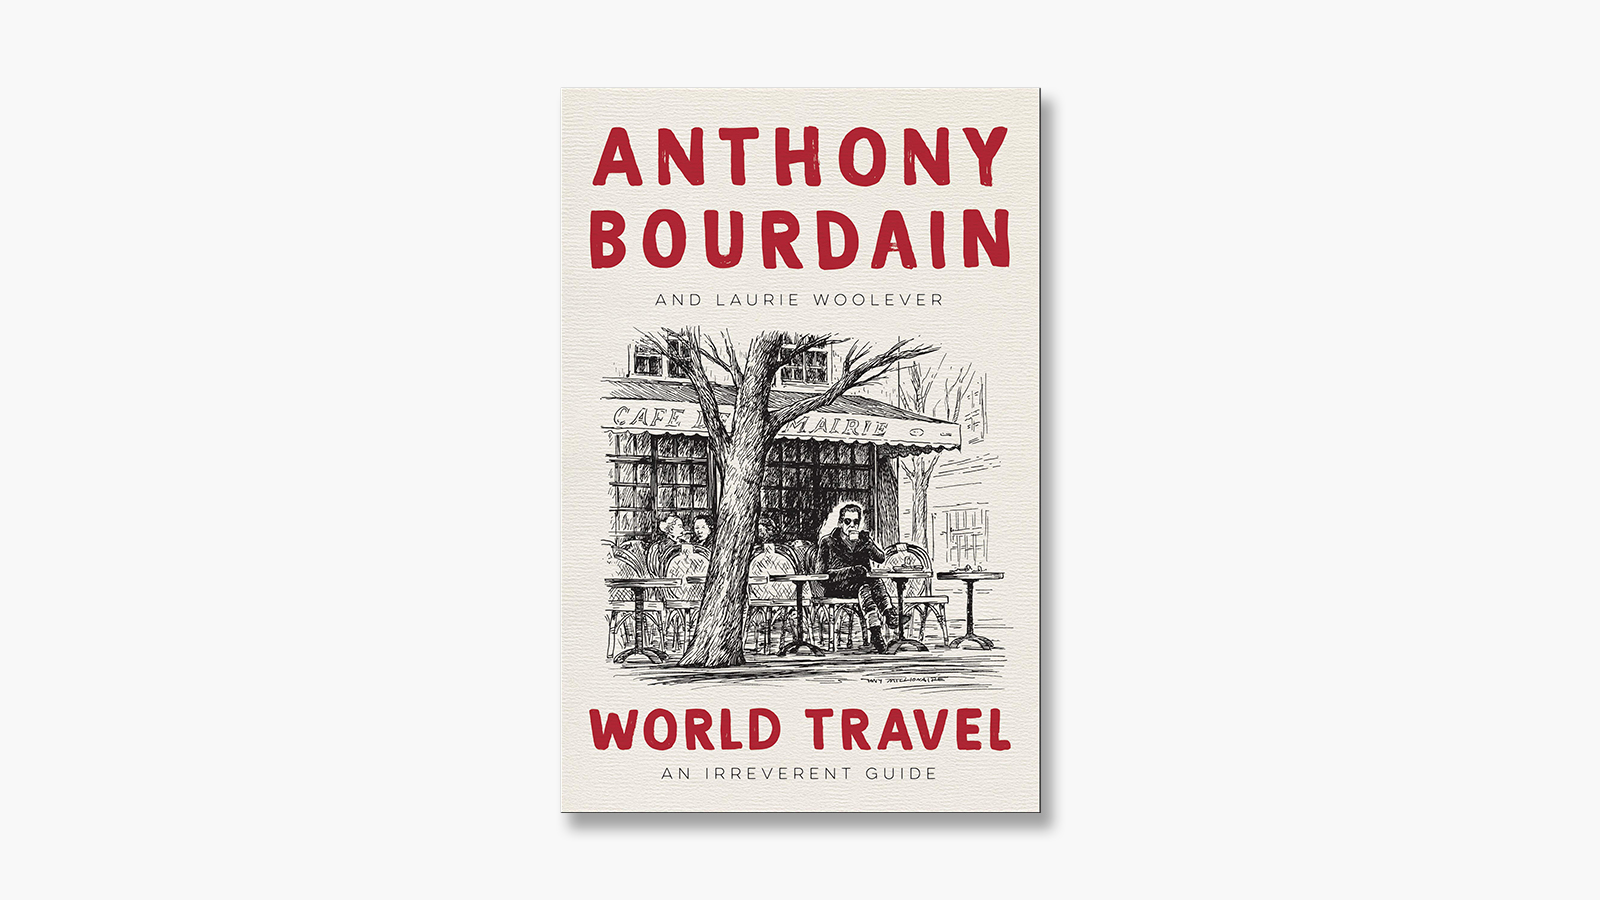 'World Travel: An Irreverent Guide' by Anthony Bourdain & Laurie Woolever